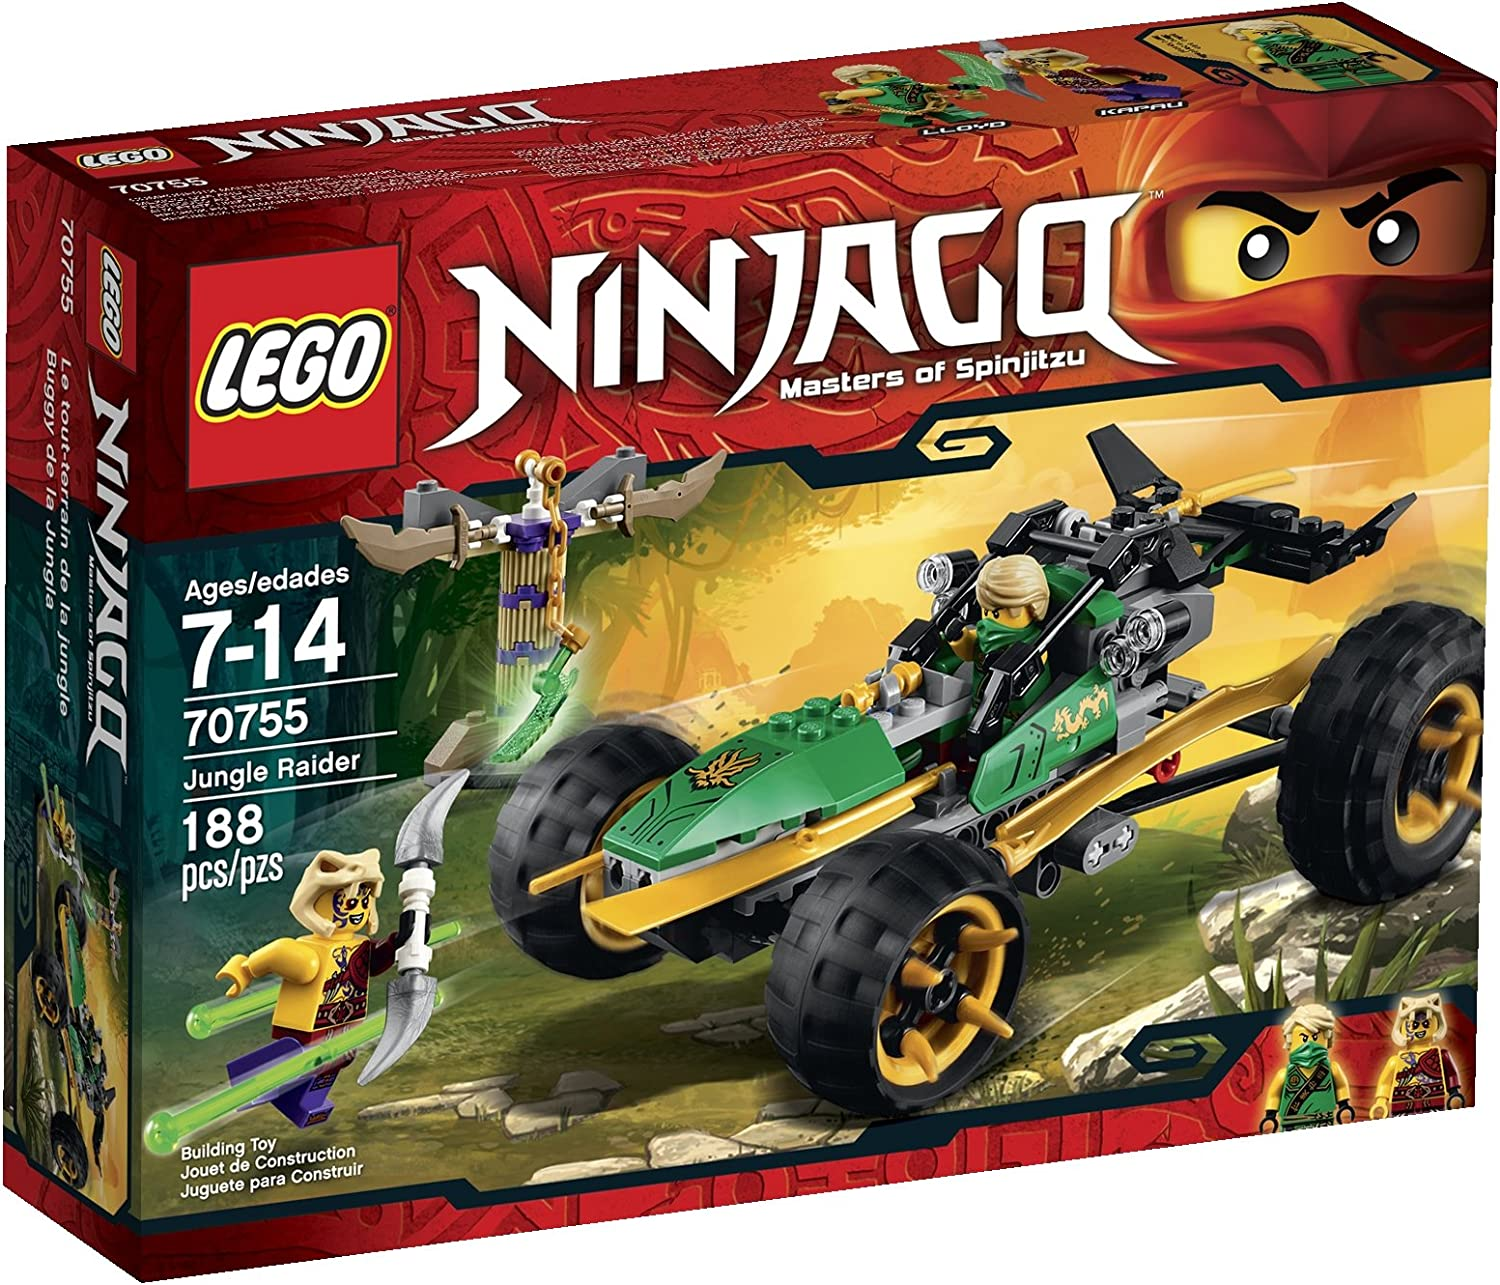 LEGO Ninjago Jungle Raider Toy (Discontinued by manufacturer)